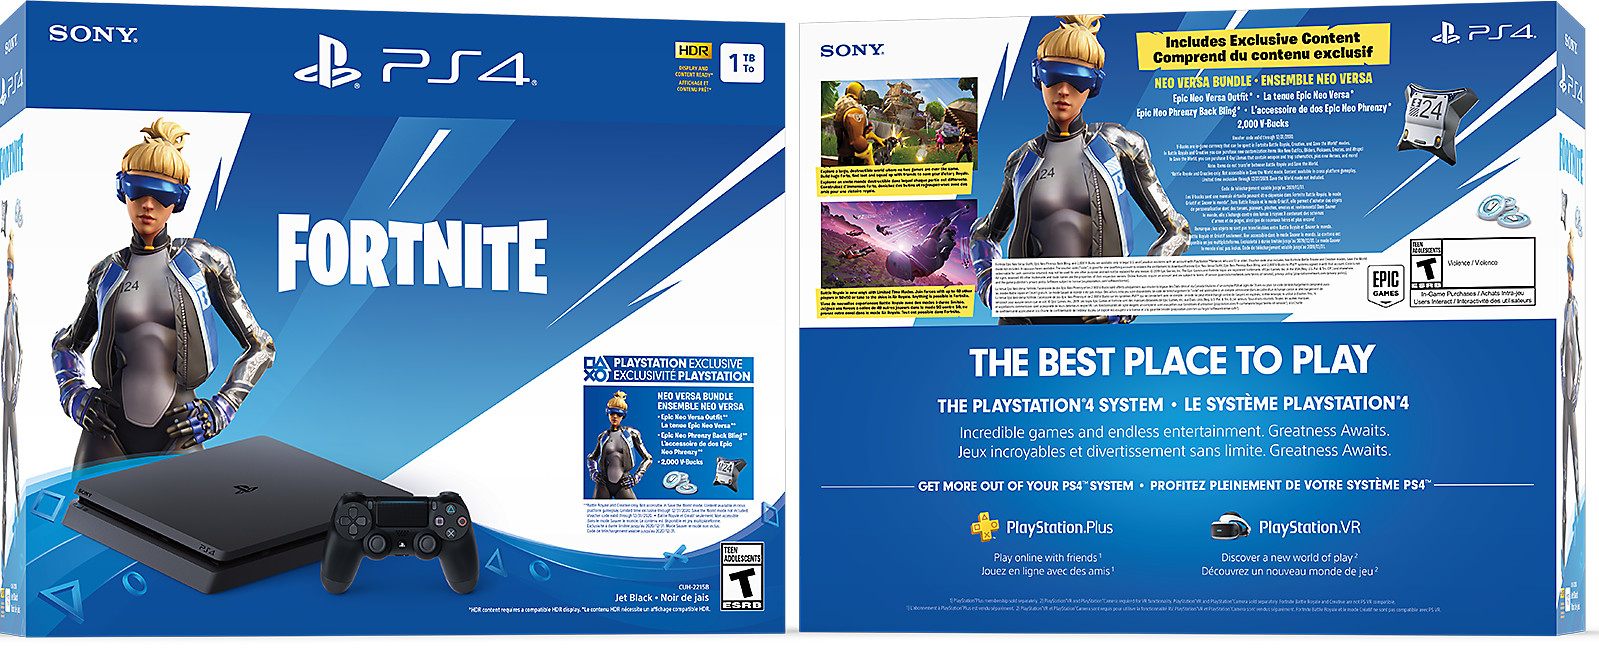 PS4 Fortnite hardware bundle